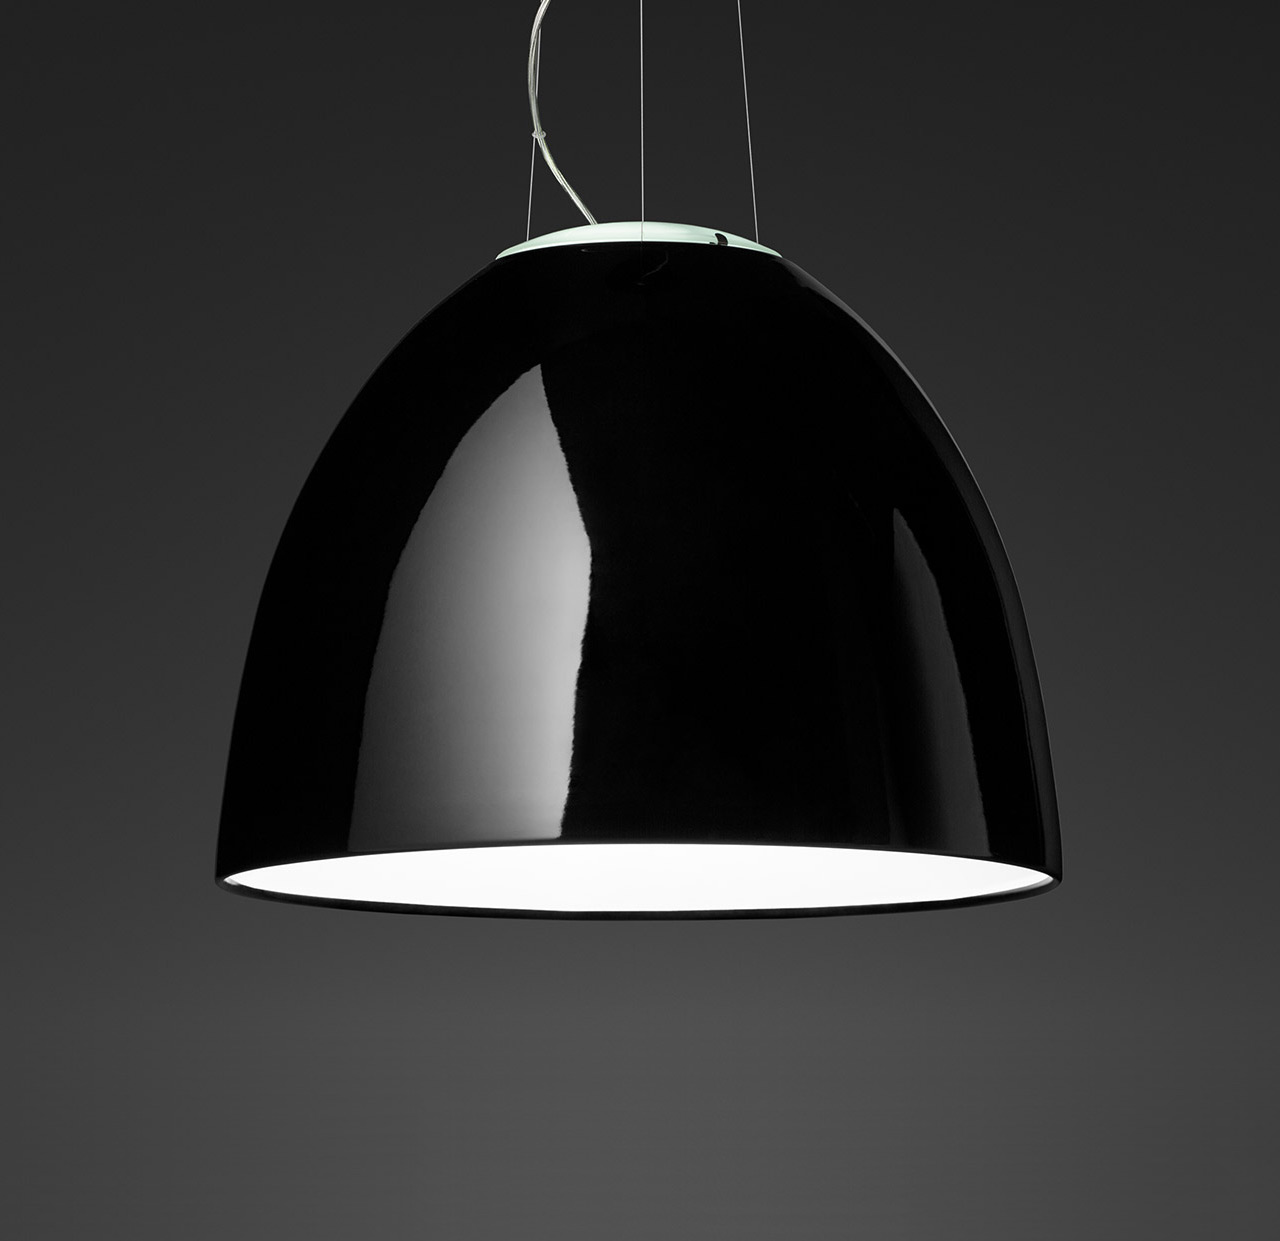 Lampe Artemide Nur Mini Gloss Sospensione Pendant Lamp By Artemide